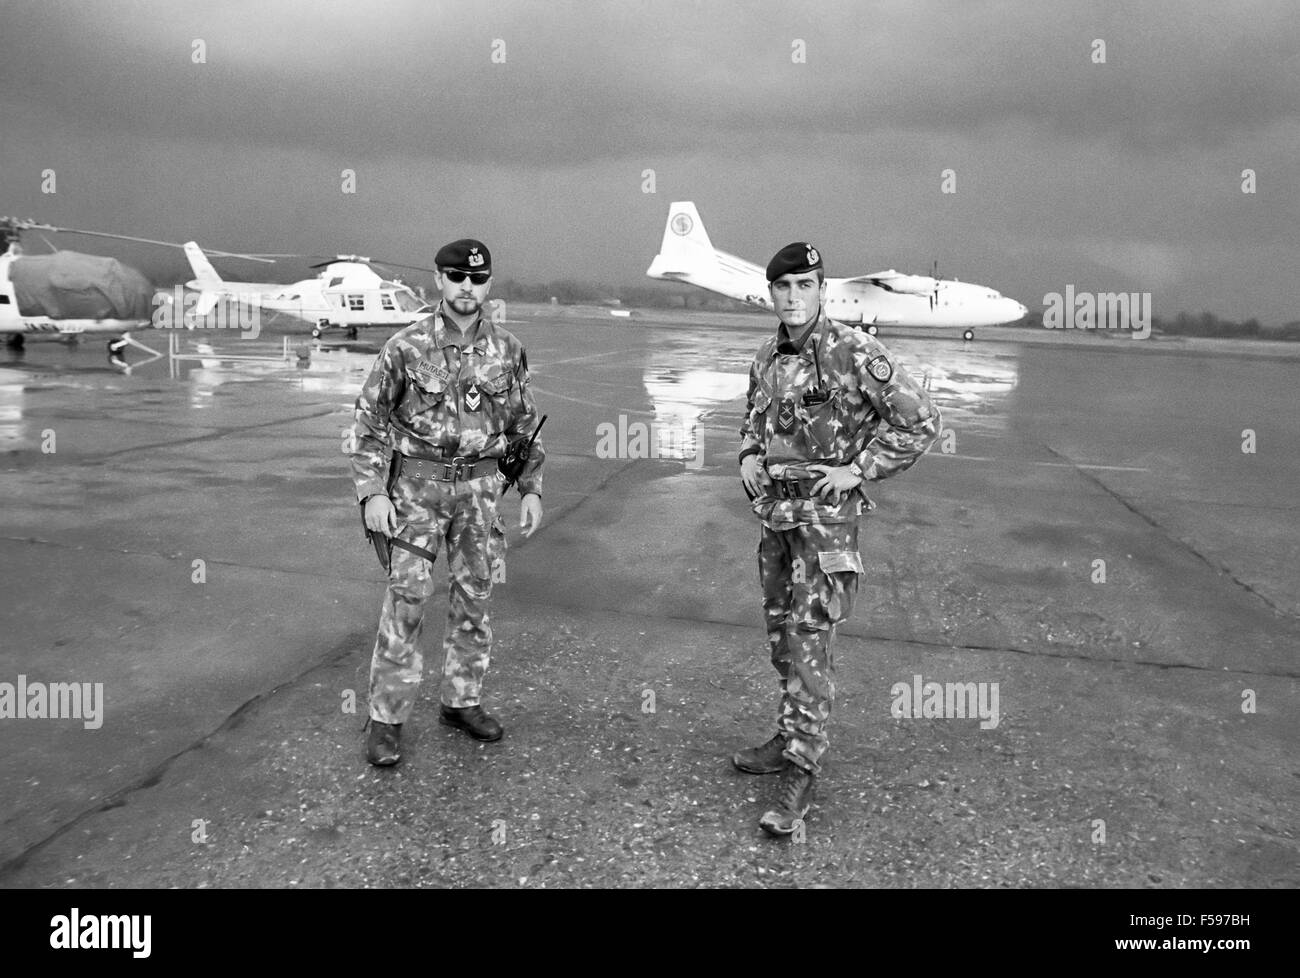 war crisis in Kosovo, april 1999, humanitarian aids for escaping refugees unloaded in Tirana airport (Albania) - Stock Image